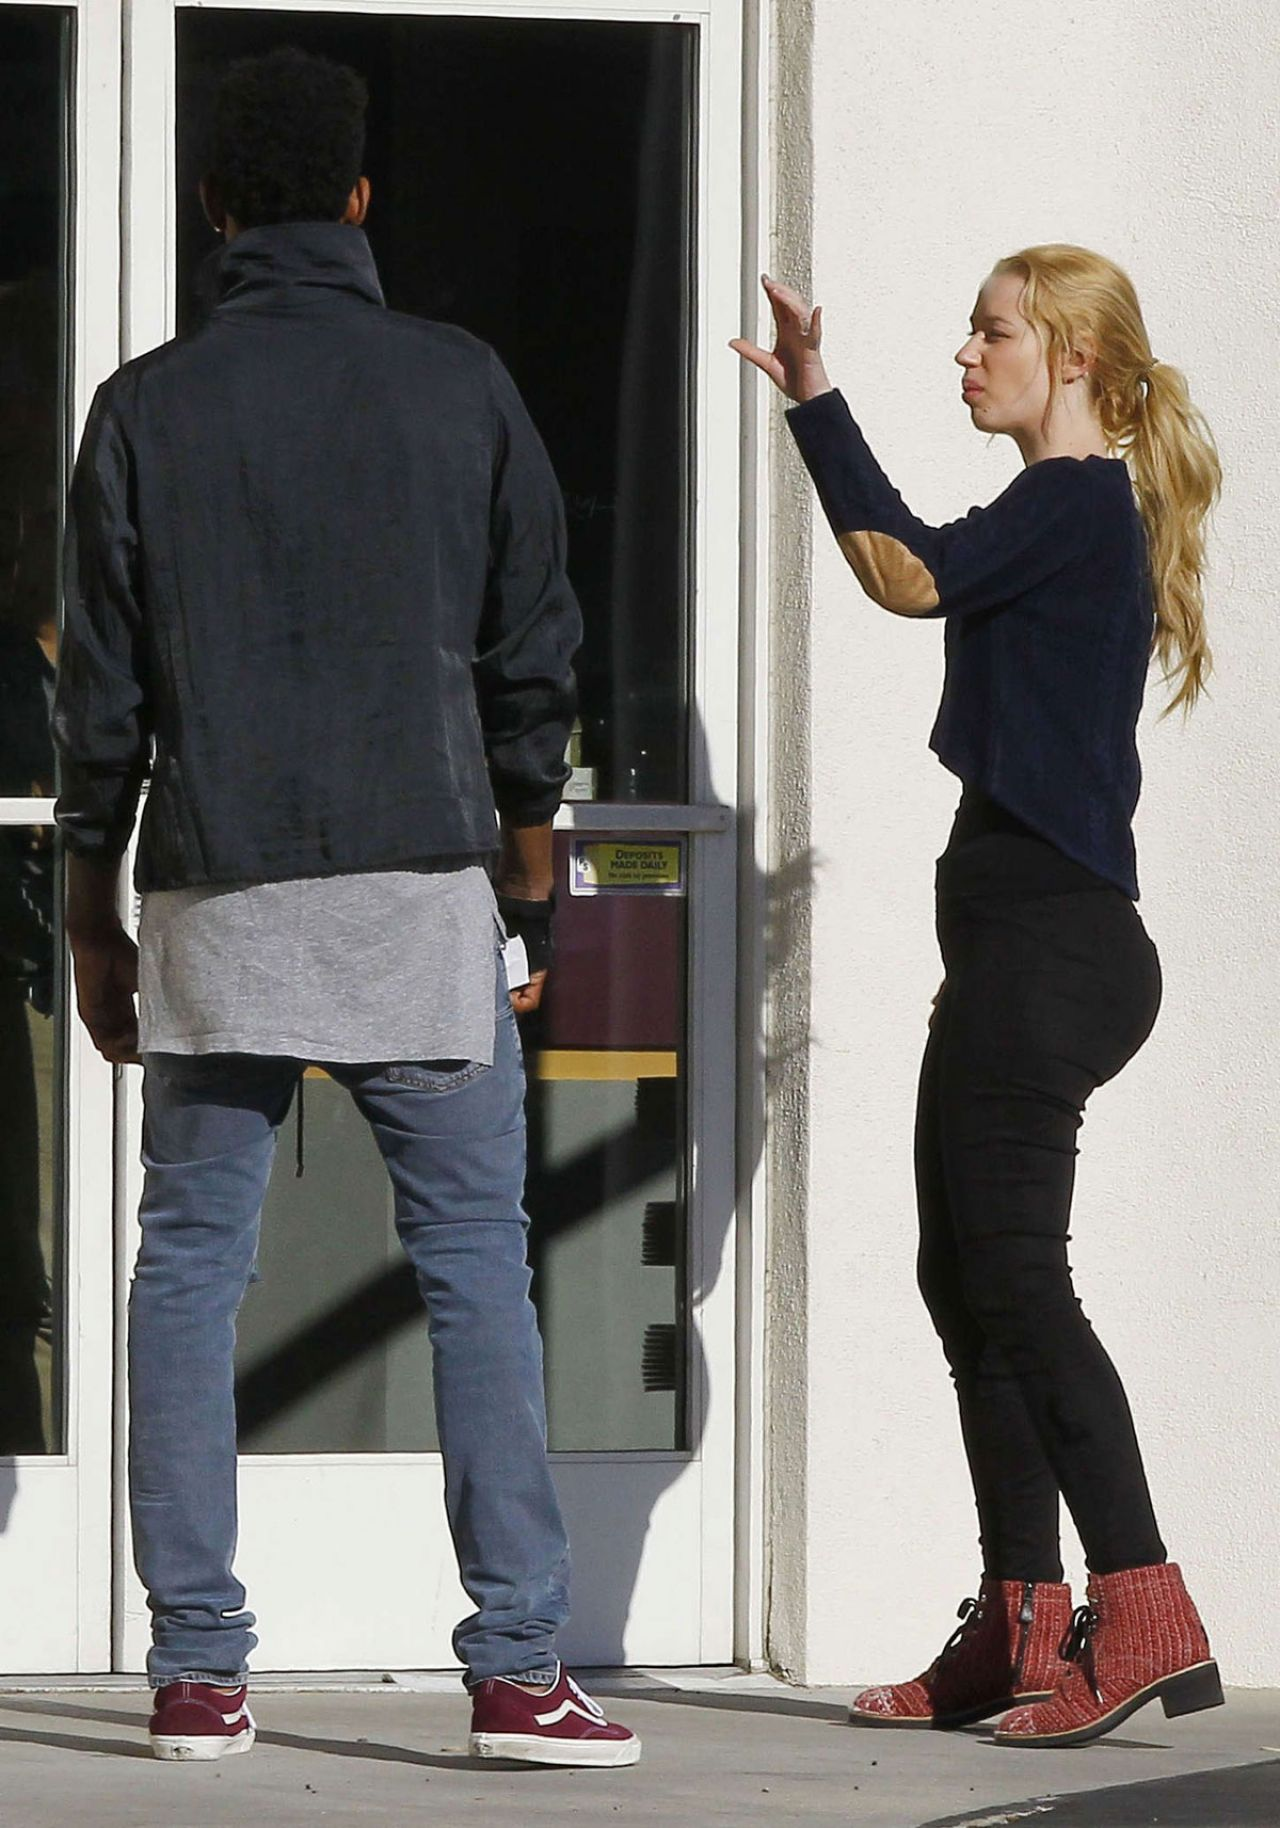 Iggy Azalea Booty Out In Los Angeles November 2014